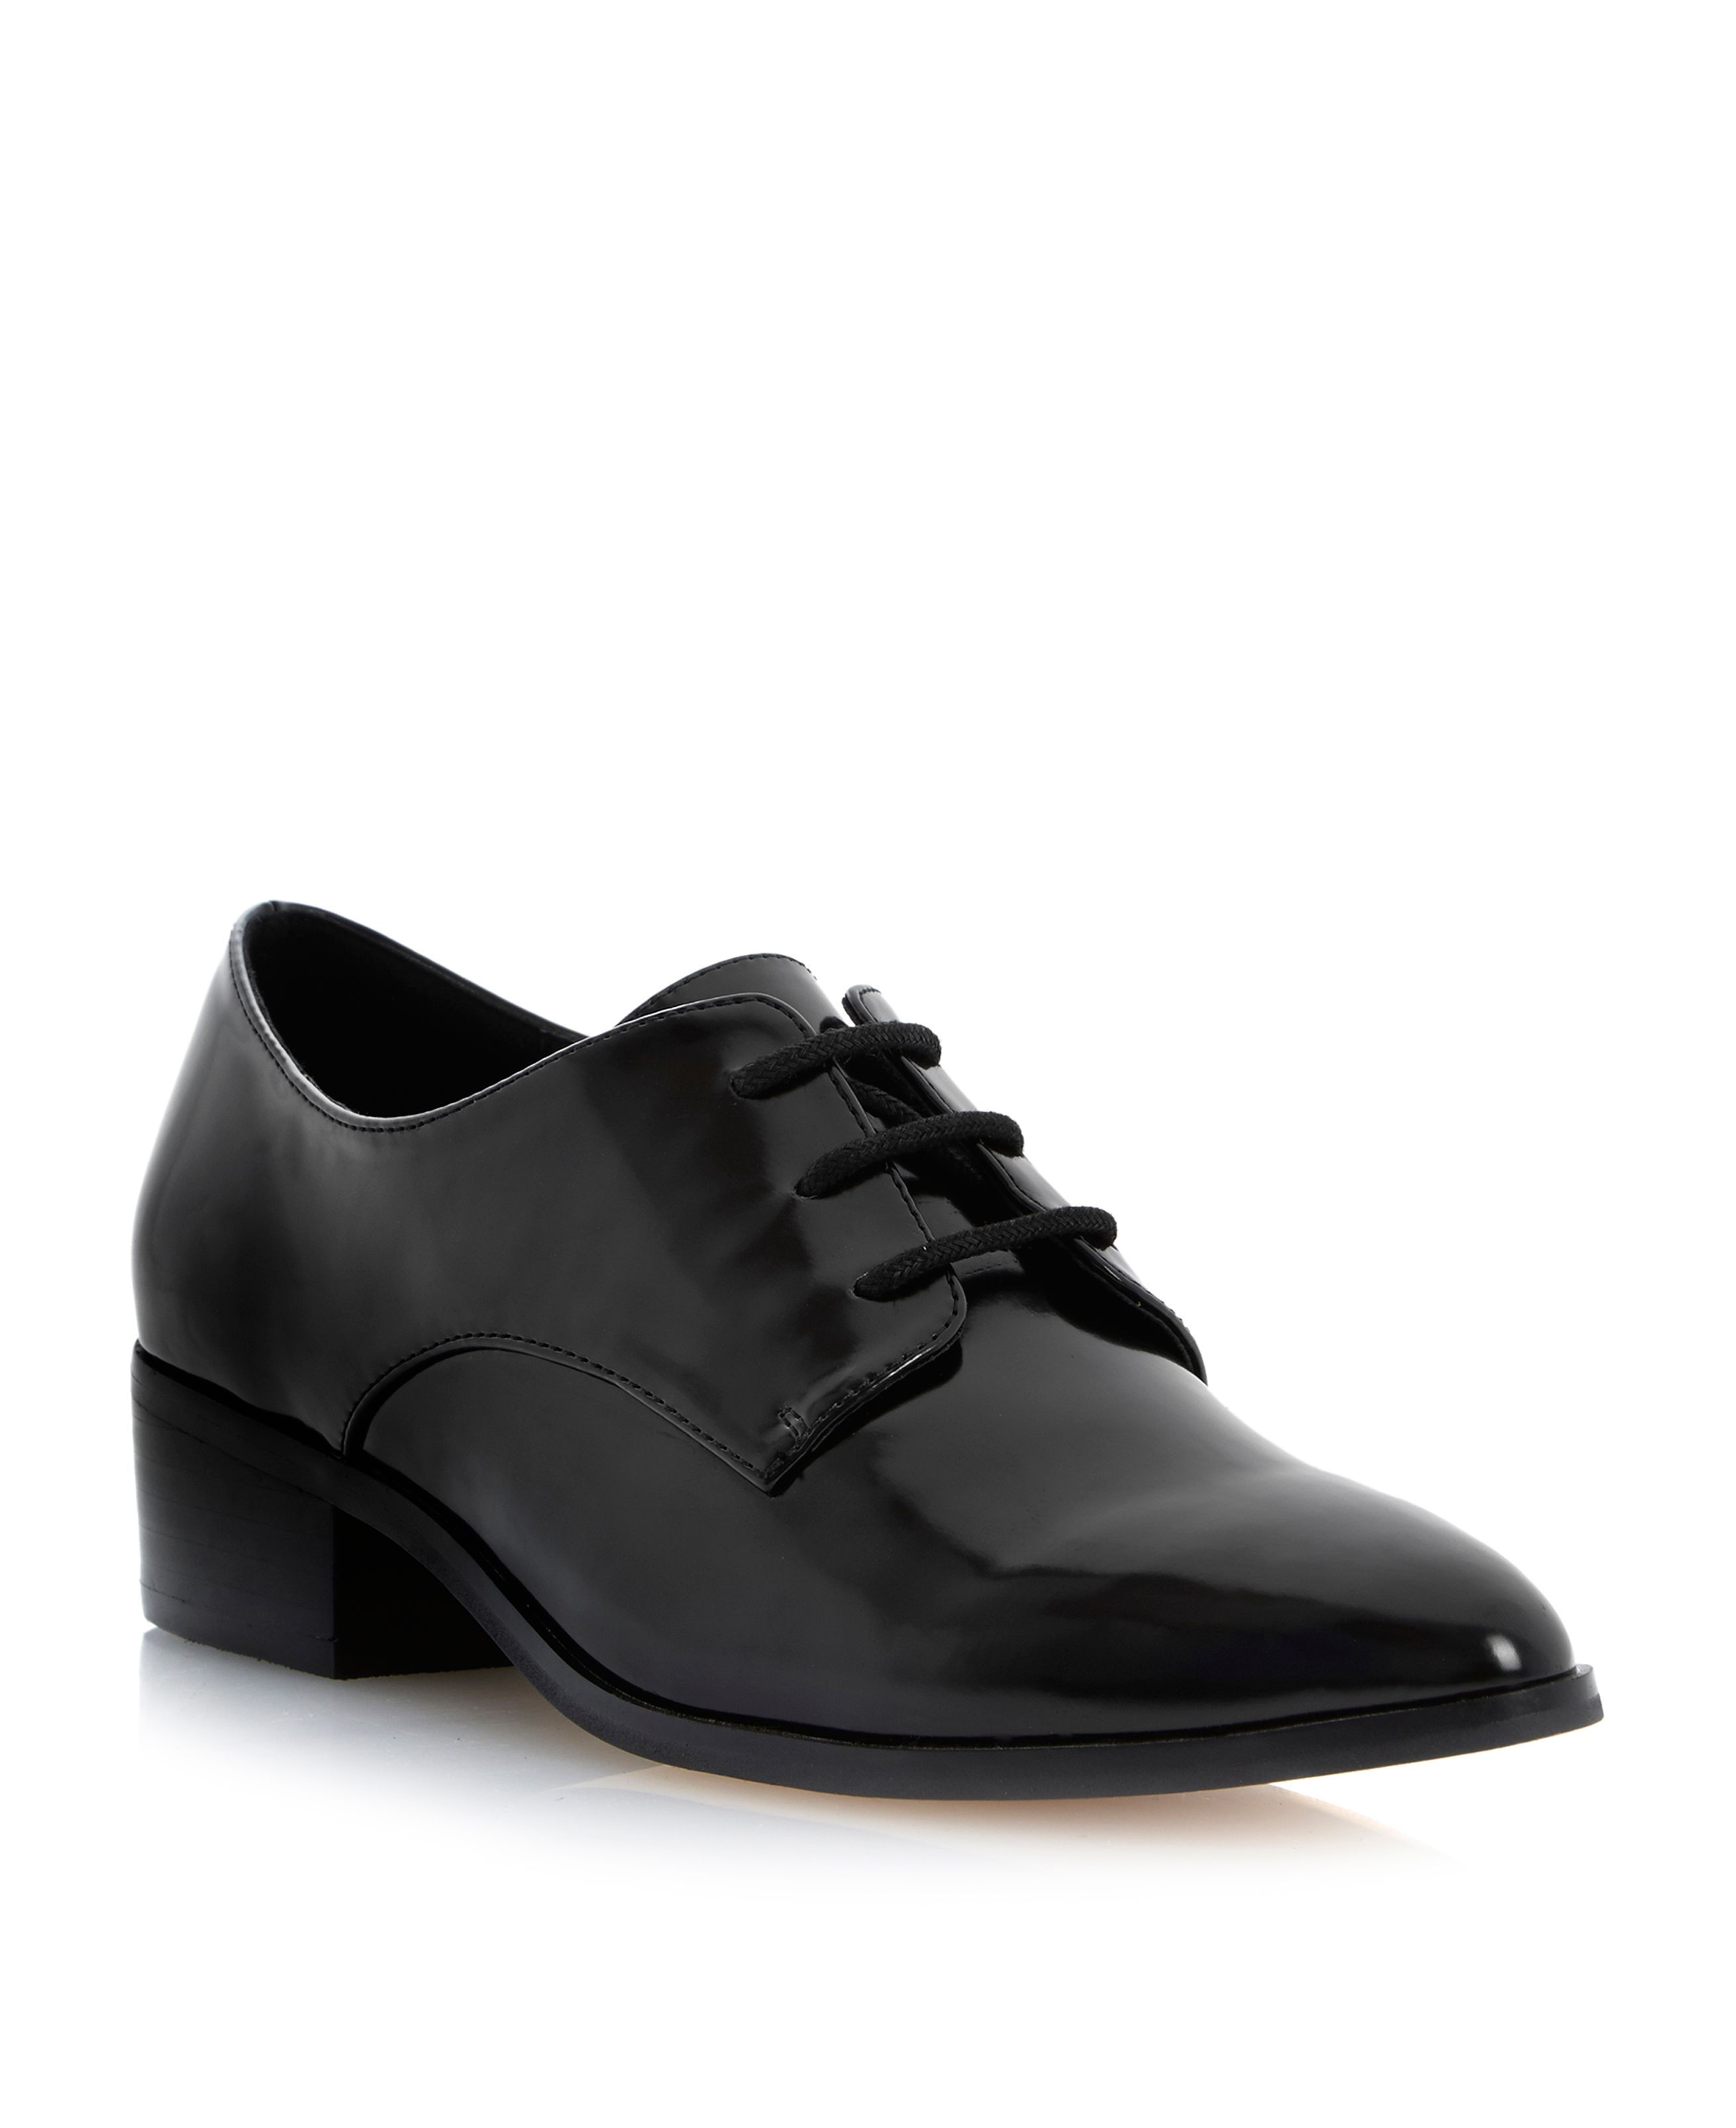 Loris point lace up shoes